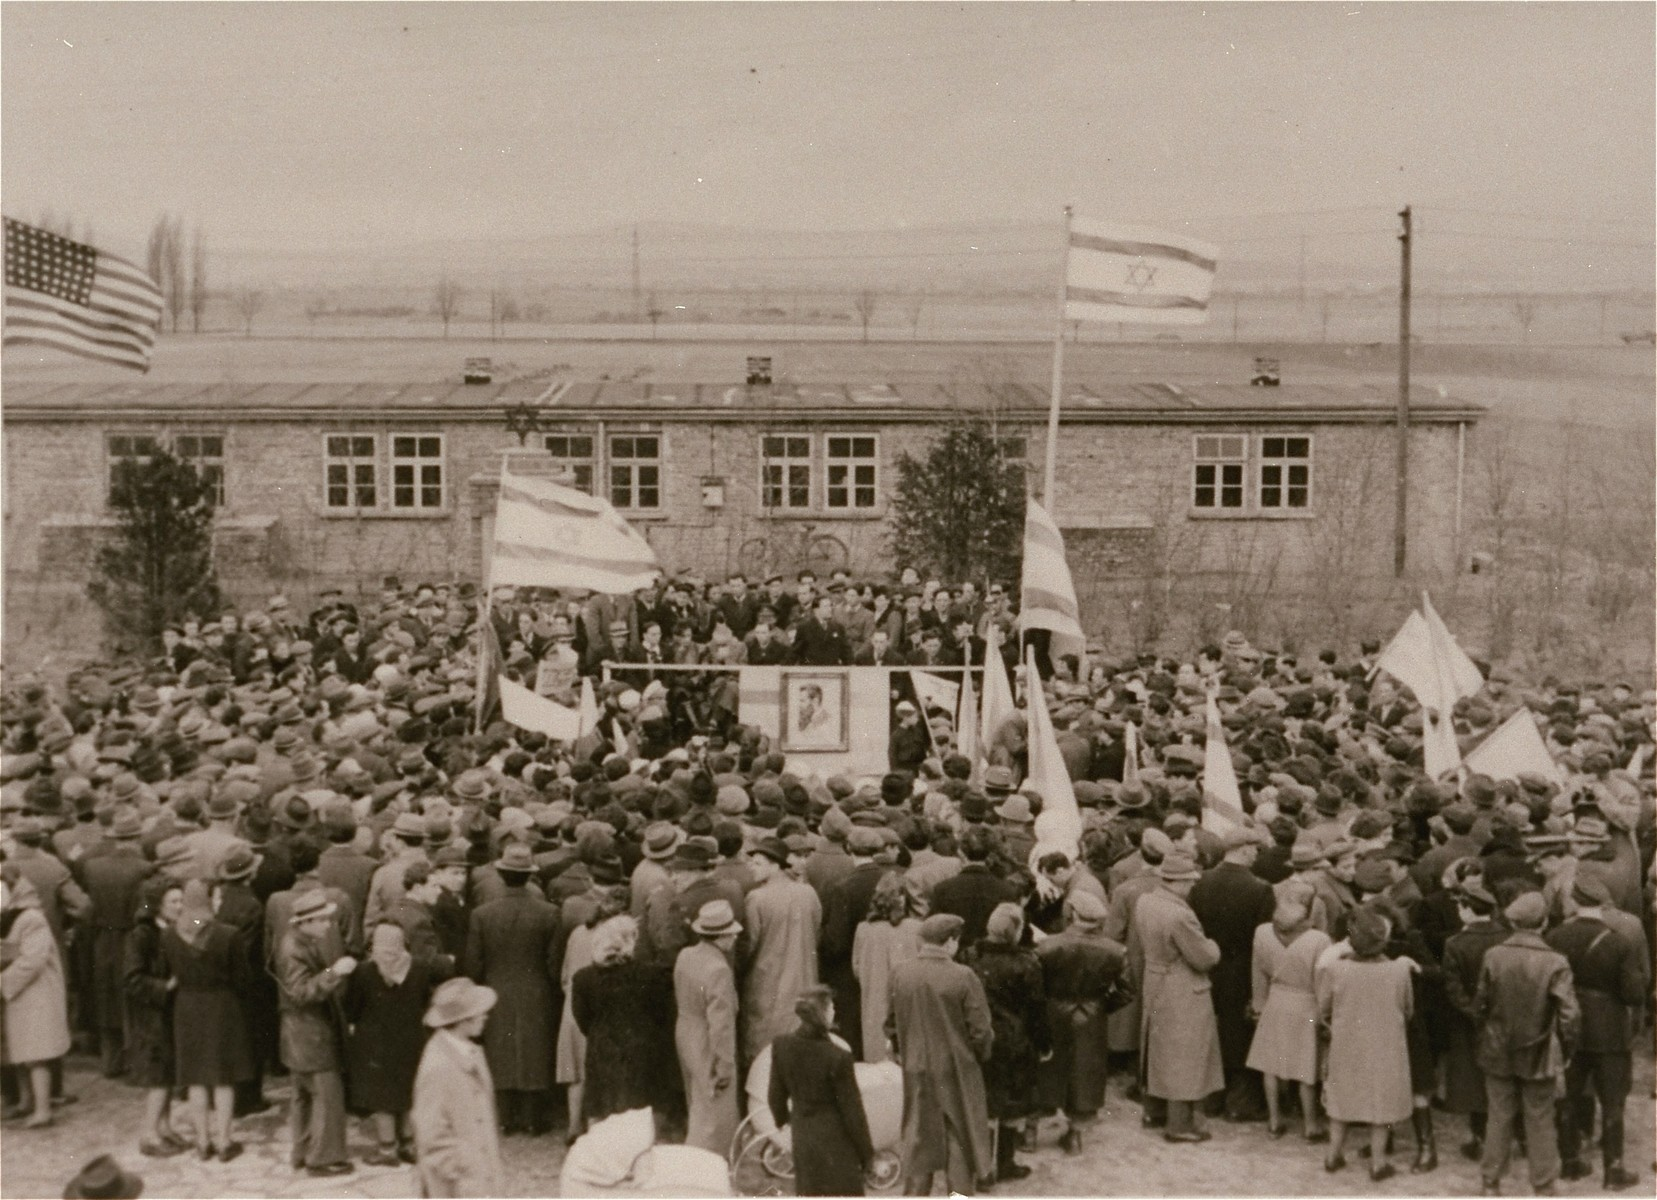 A large crowd rallies in a Zionist demonstration in the Zeilsheim displaced persons' camp.